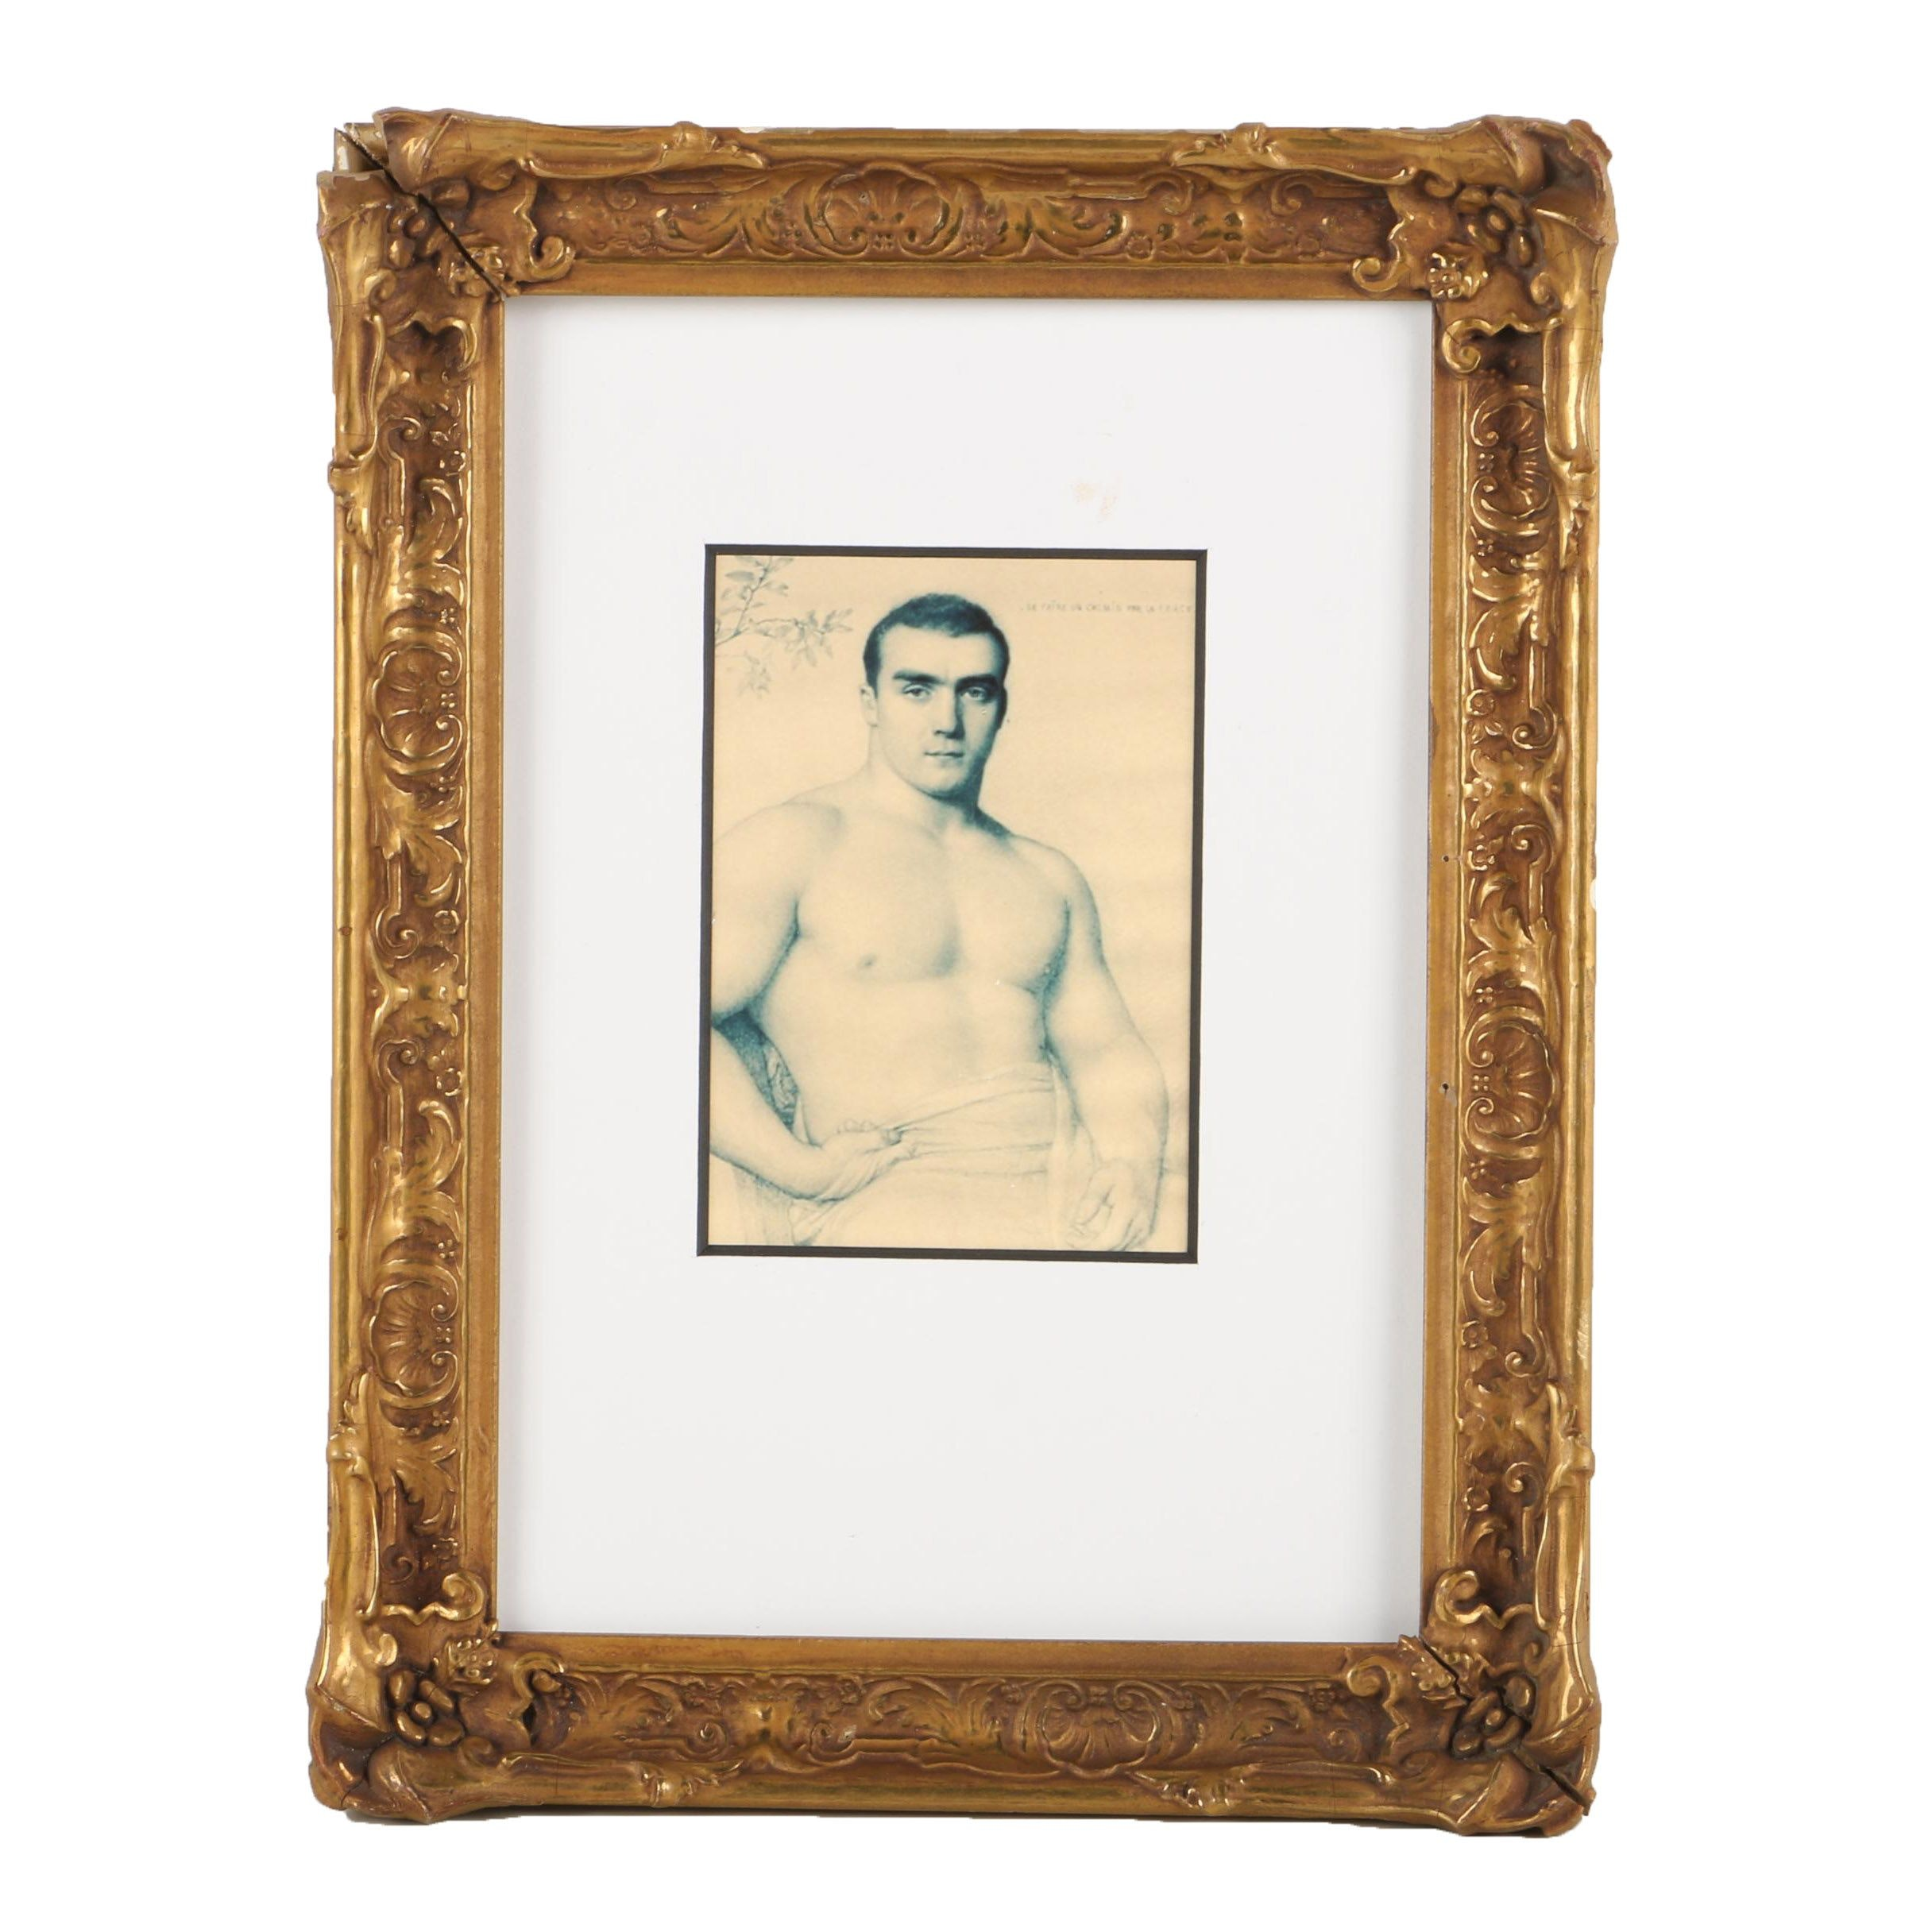 Giclee on Paper of Partially Nude Male